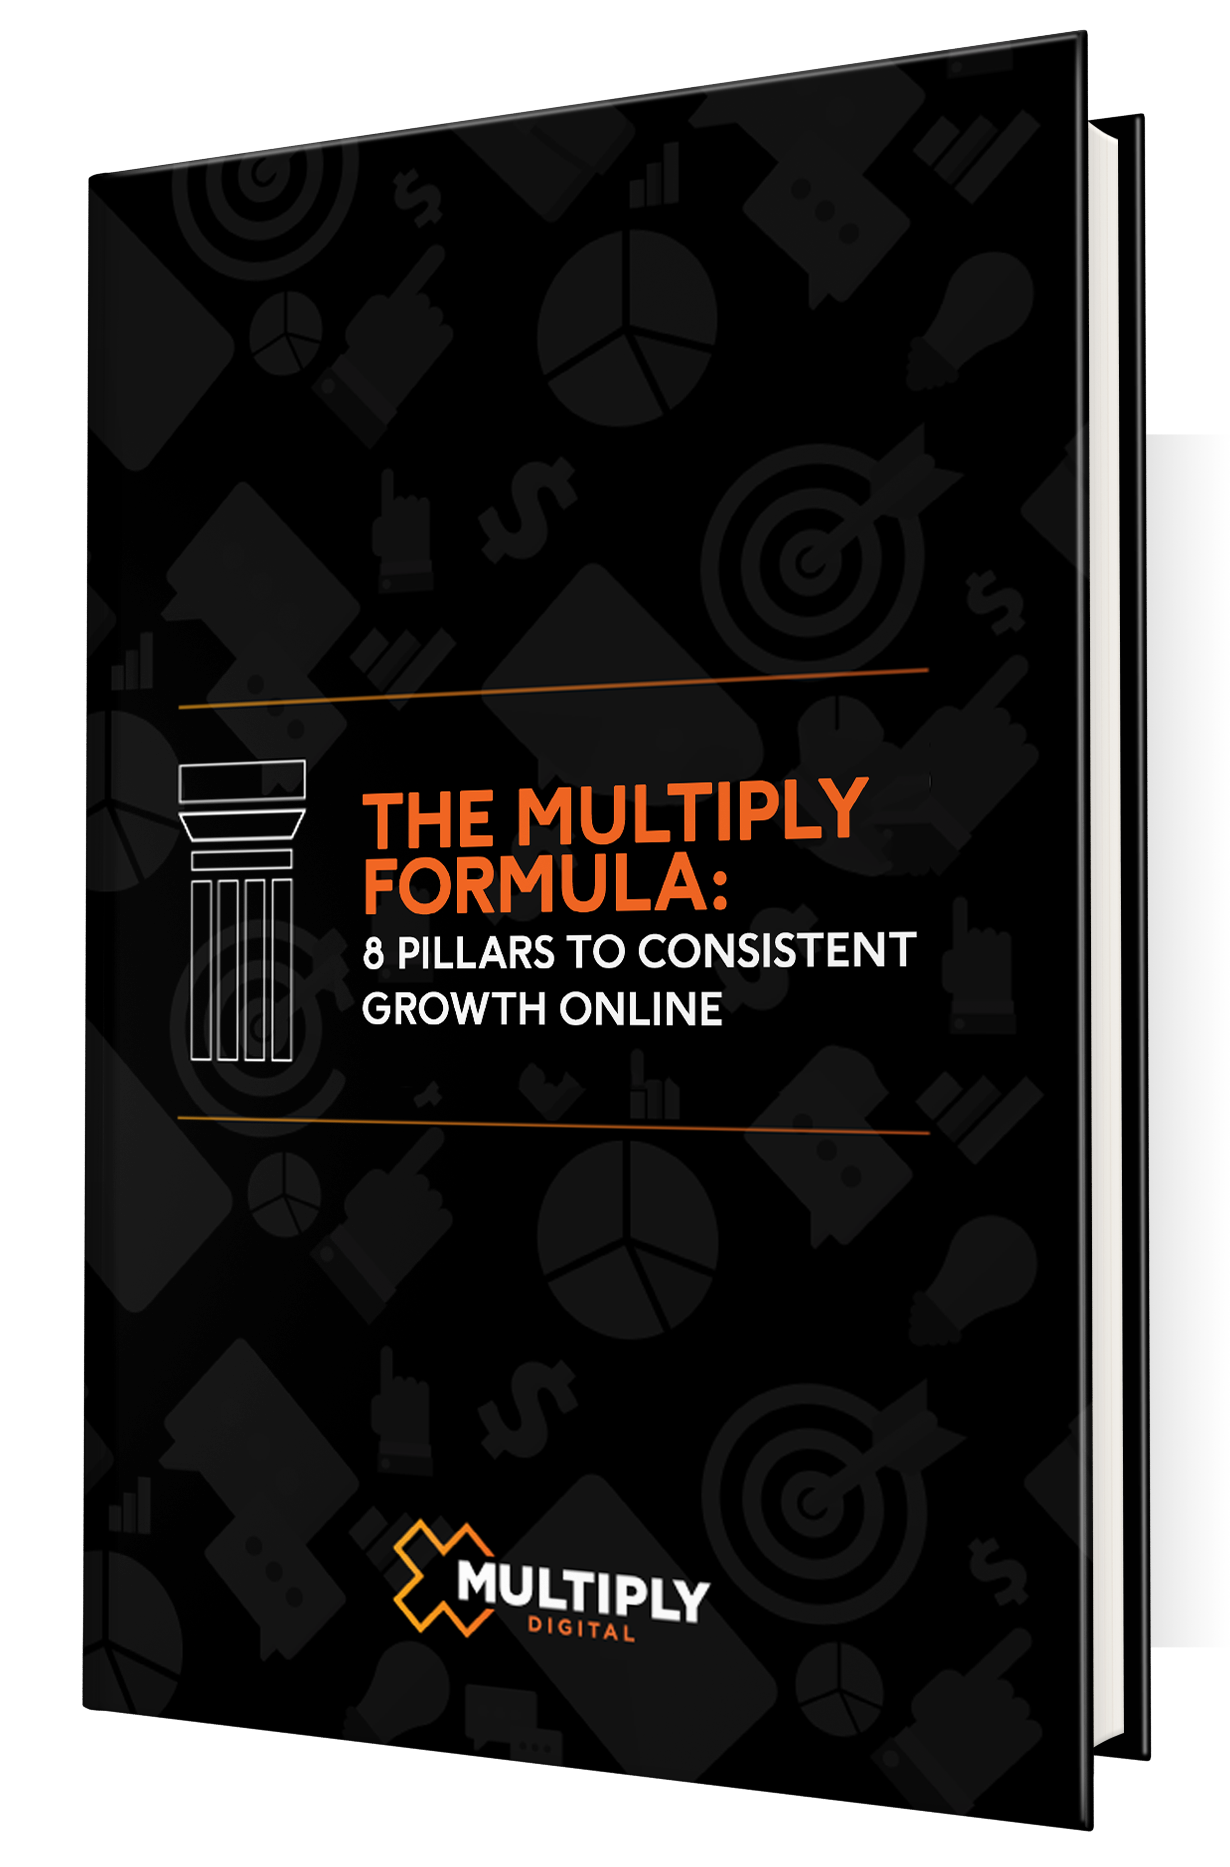 The Multiply Formula: 8 Pillars to Consistent Growth Online